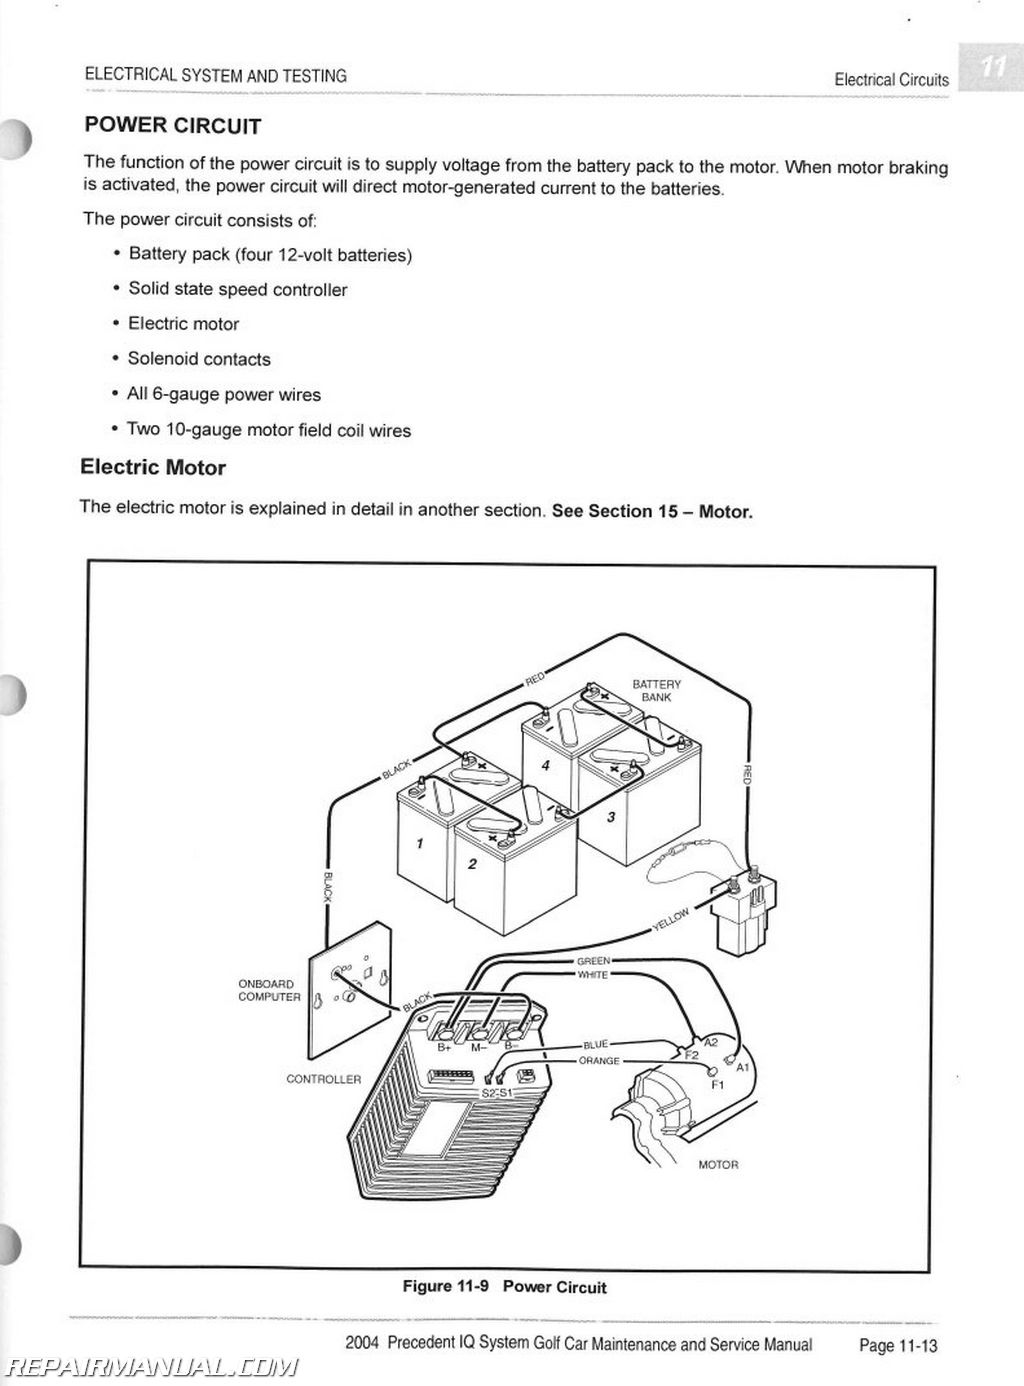 Gem Car Battery Wiring Diagram Besides Gem E825 Battery Wiring Diagram